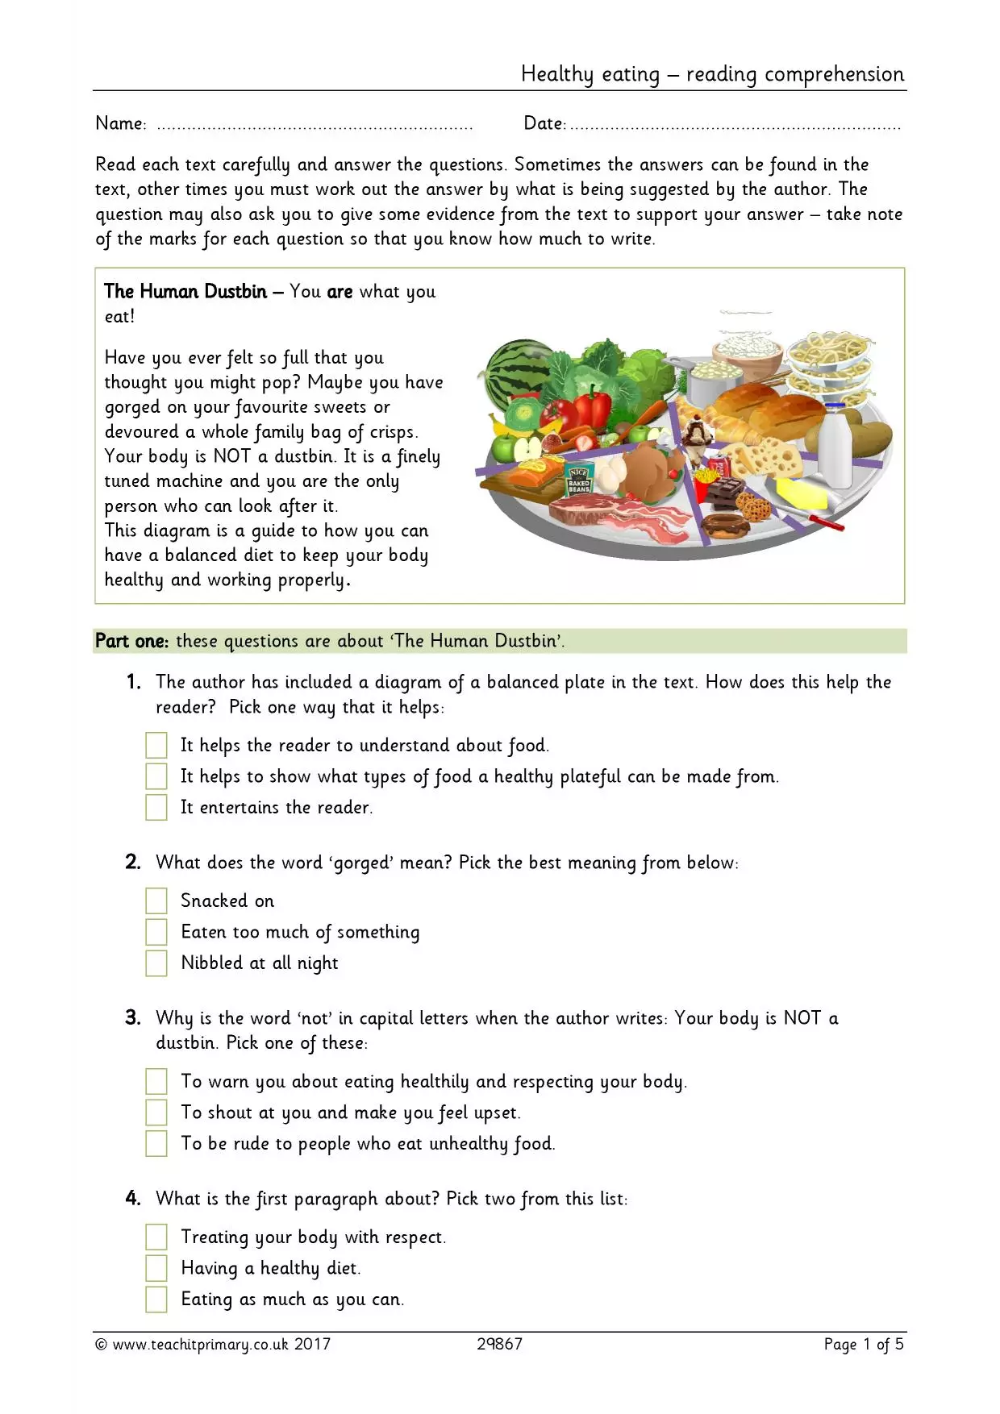 Healthy eating reading comprehension in 2020 Healthy